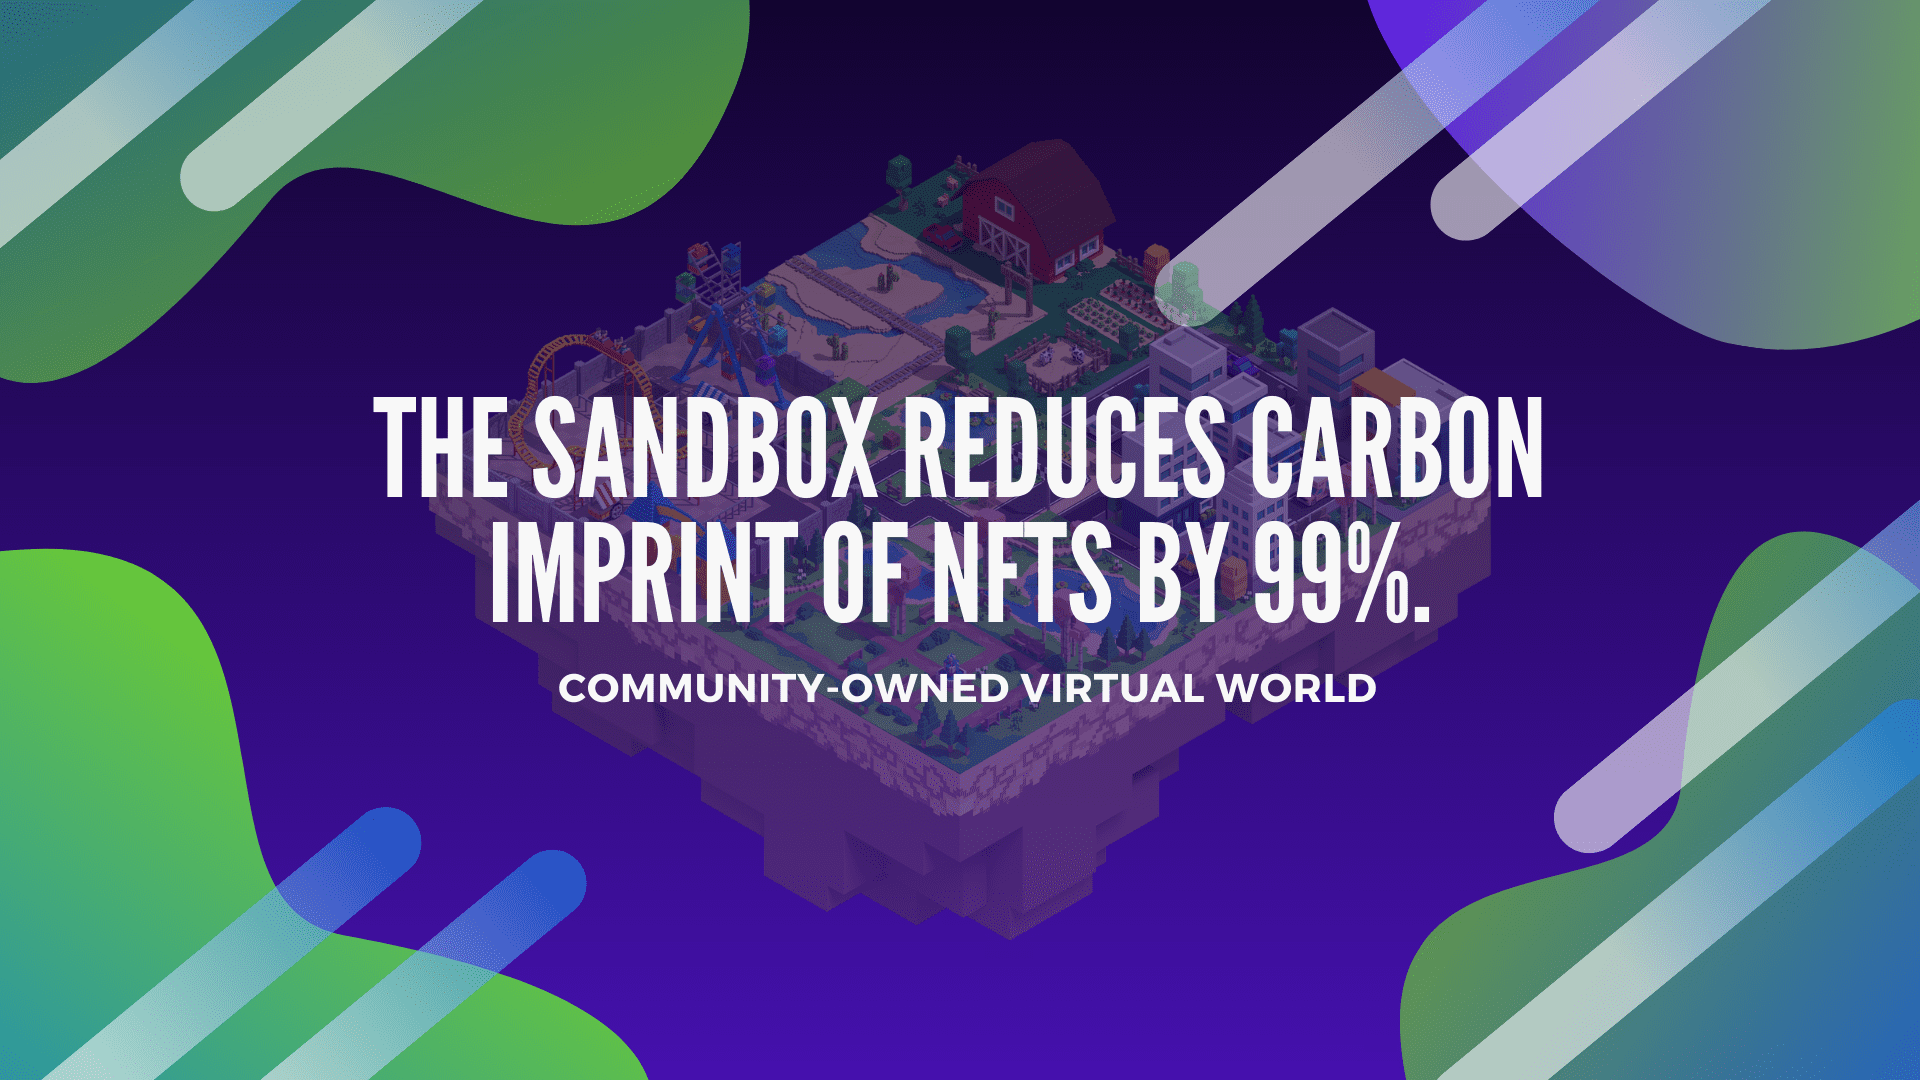 Sandbox, Now, Reducing The Carbon Imprint of NFTs by 99% And Boosting Afforestation.